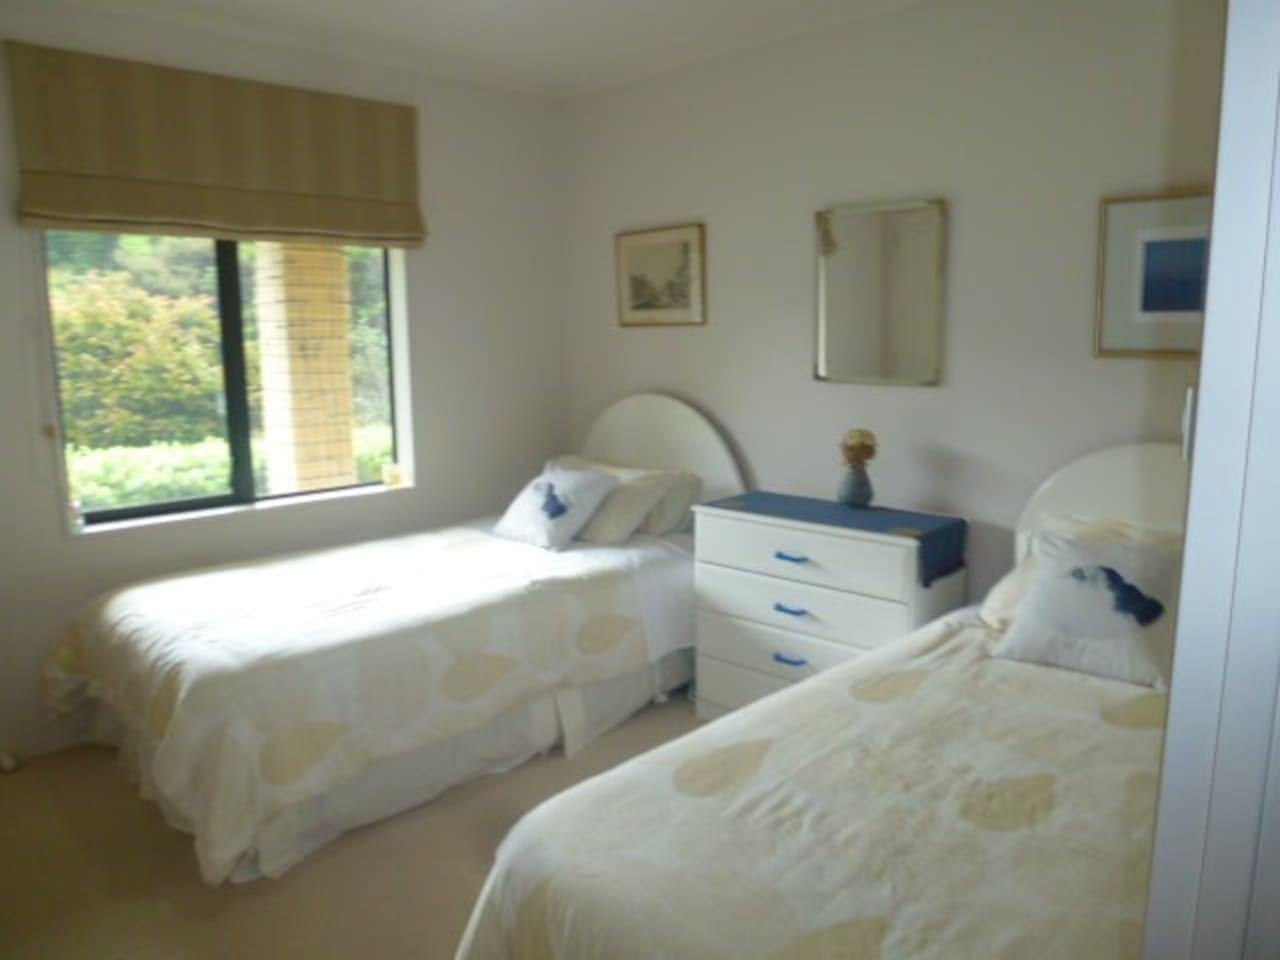 This room is medium sized with one king single and one single bed, tallboy and double wardrobe. It has pretty rural views from the window.